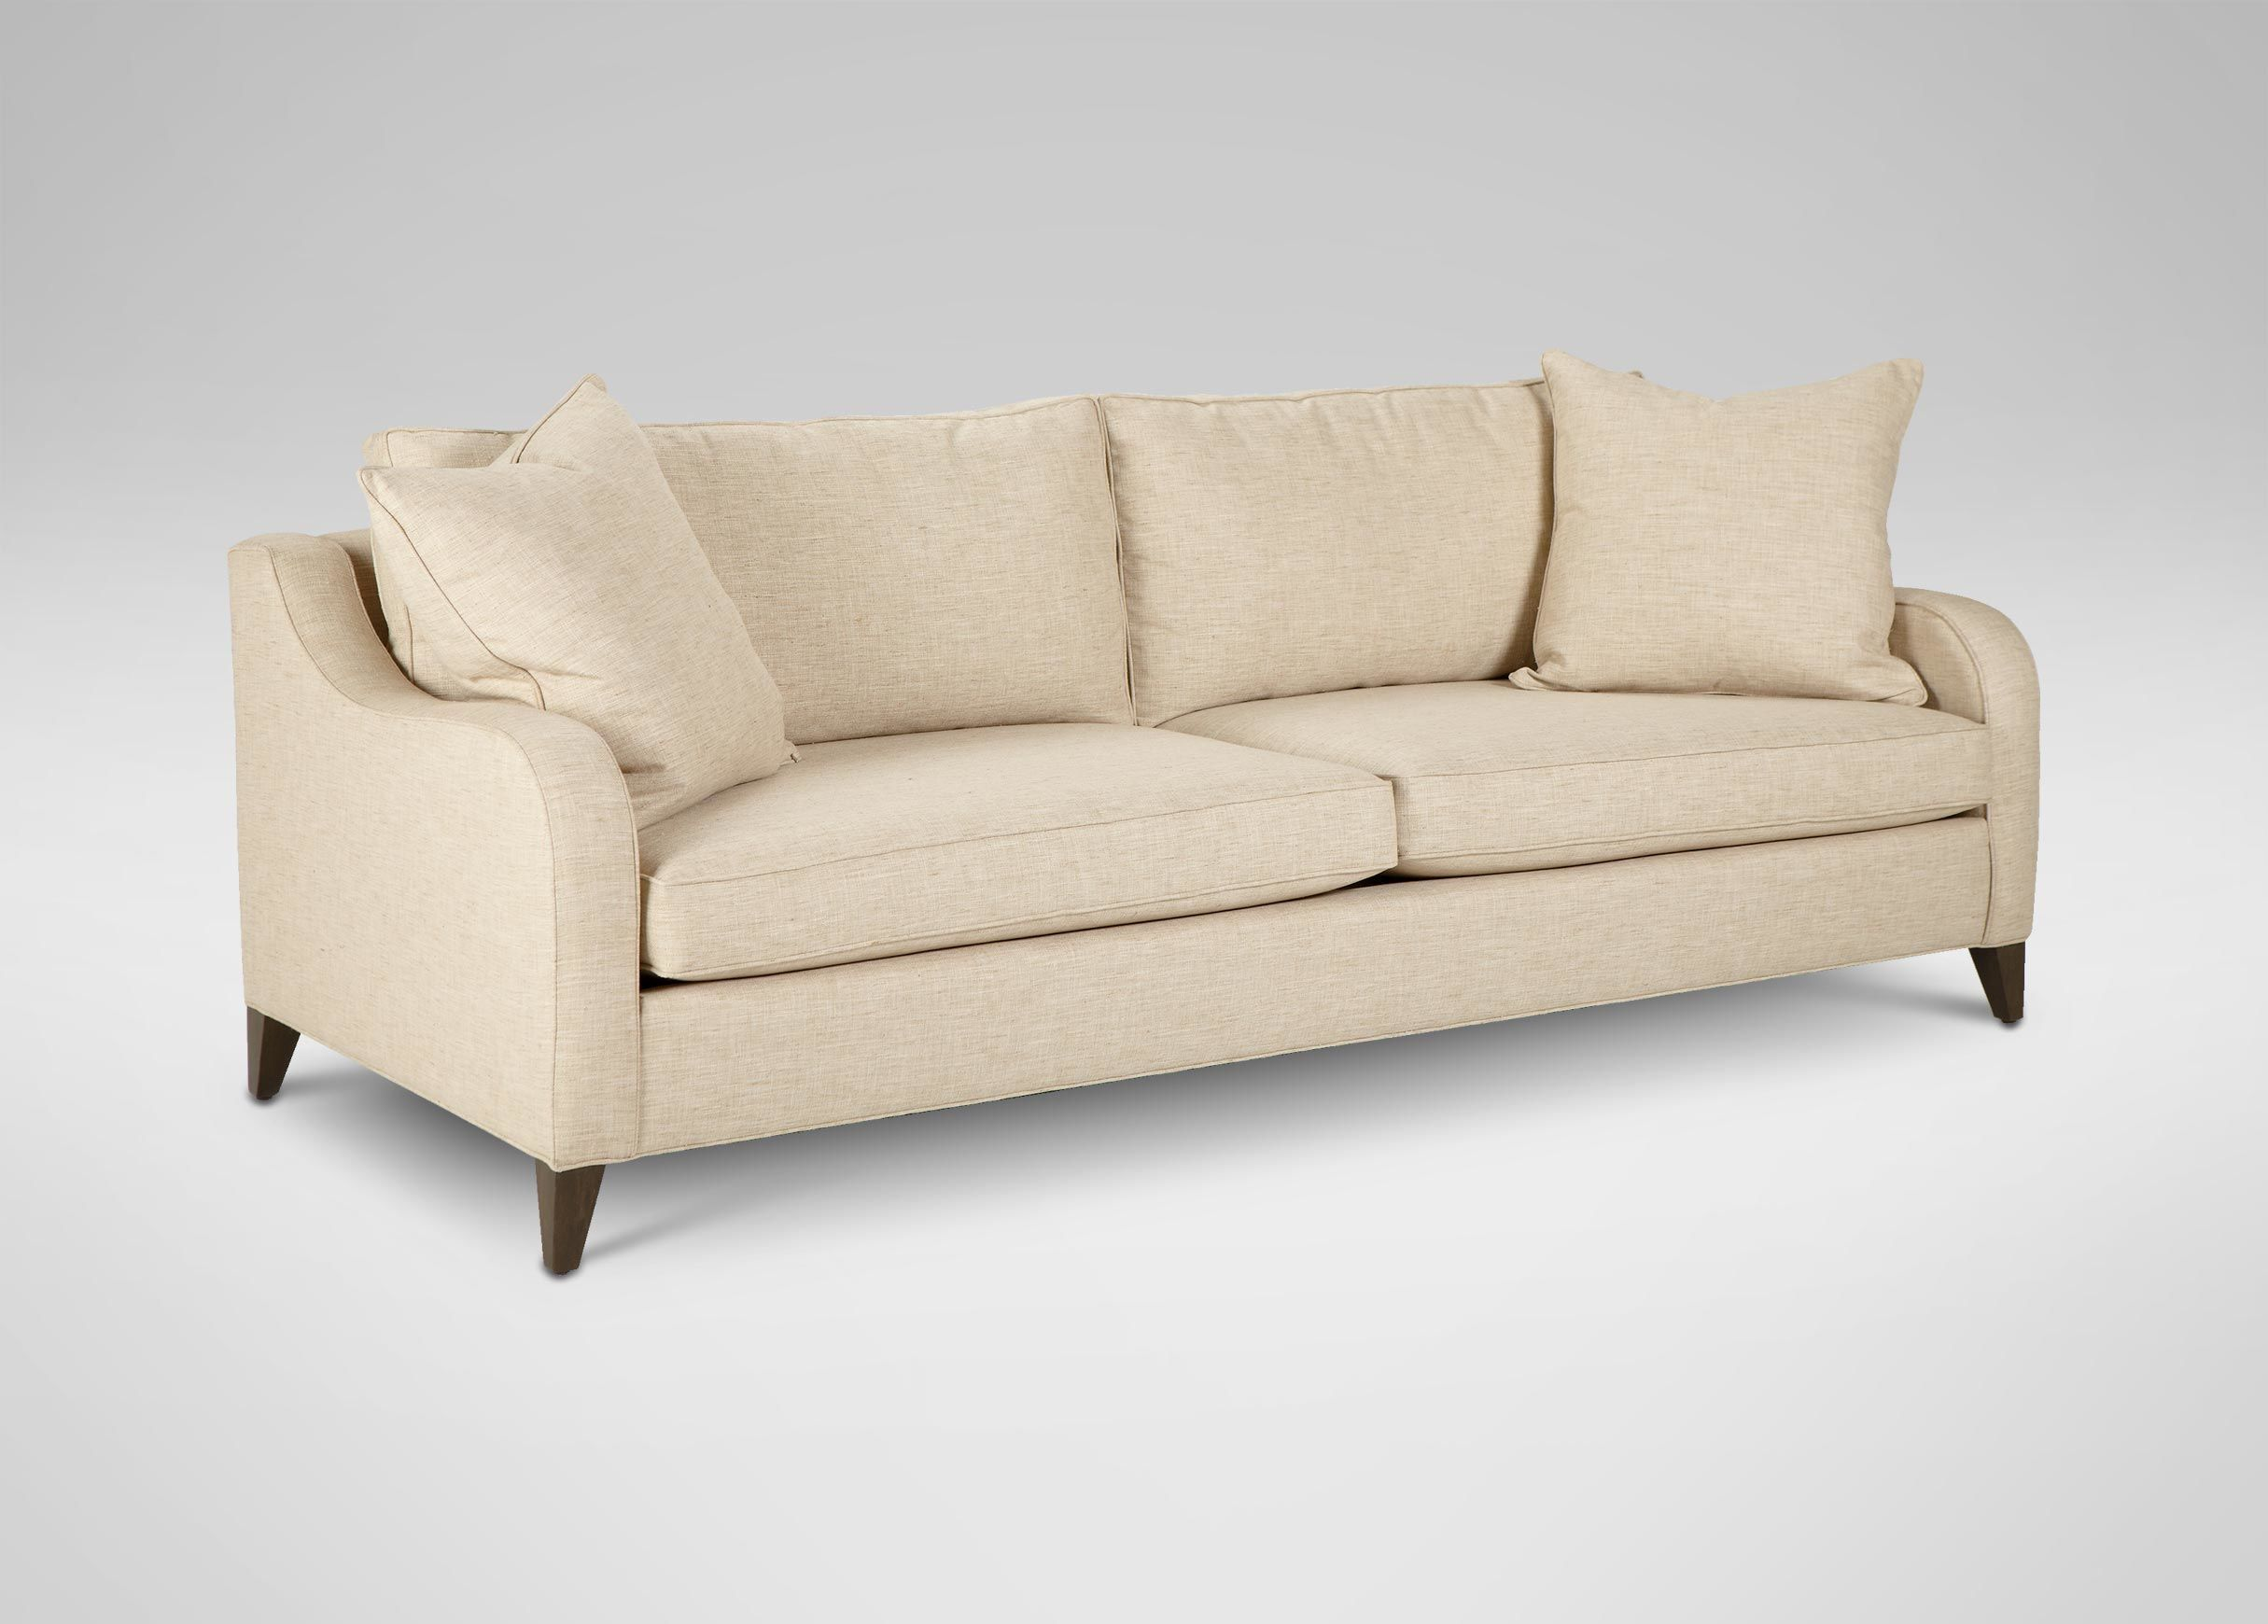 sofas products couches armchairs cushion more terms flodafors settees gb white rl read year ikea in en the loveseat about seat guarantee v single f sofa